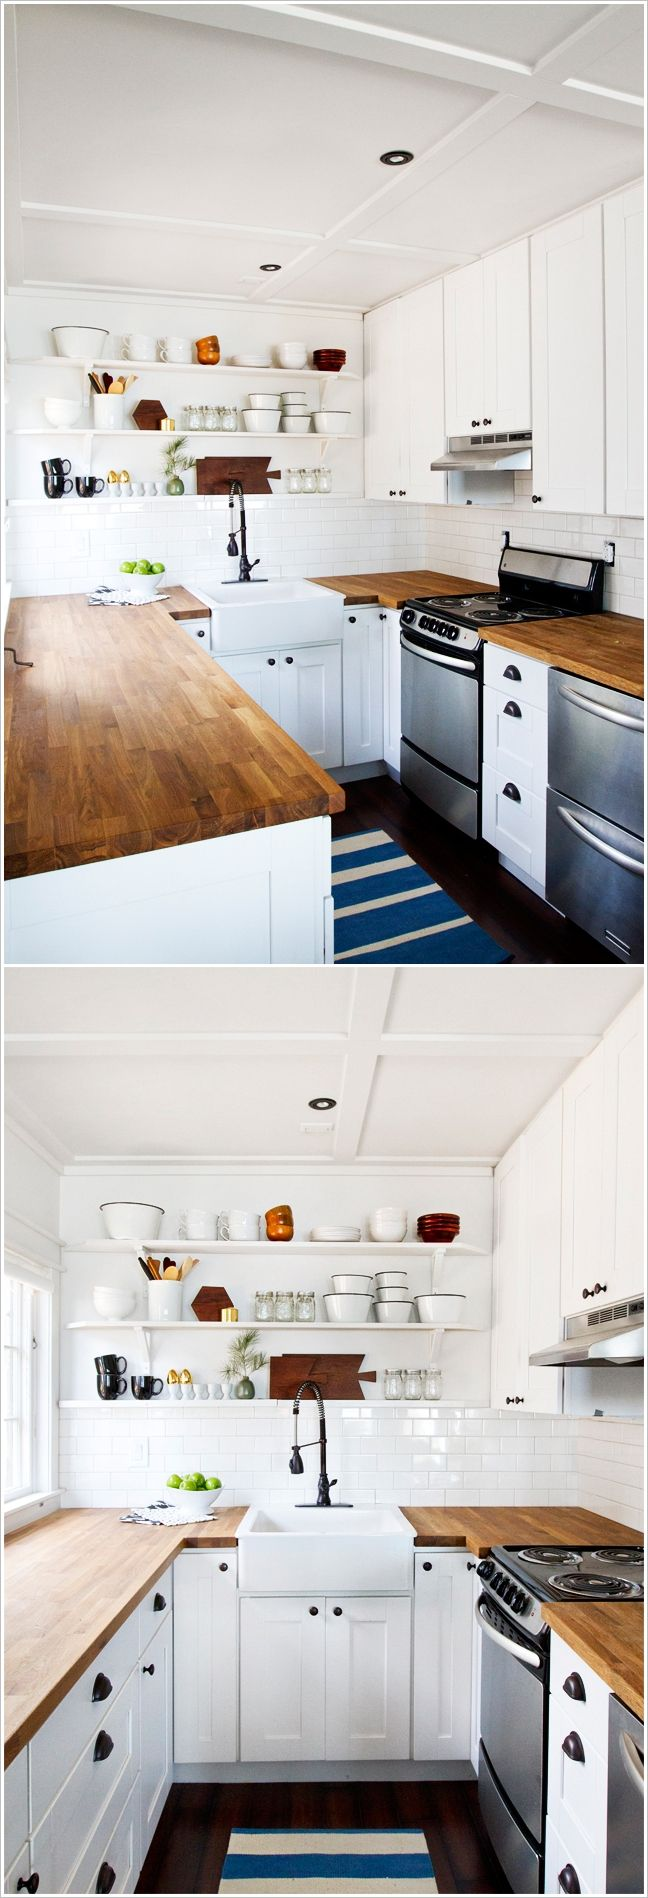 best 25+ u shape kitchen ideas on pinterest | u shaped kitchen diy